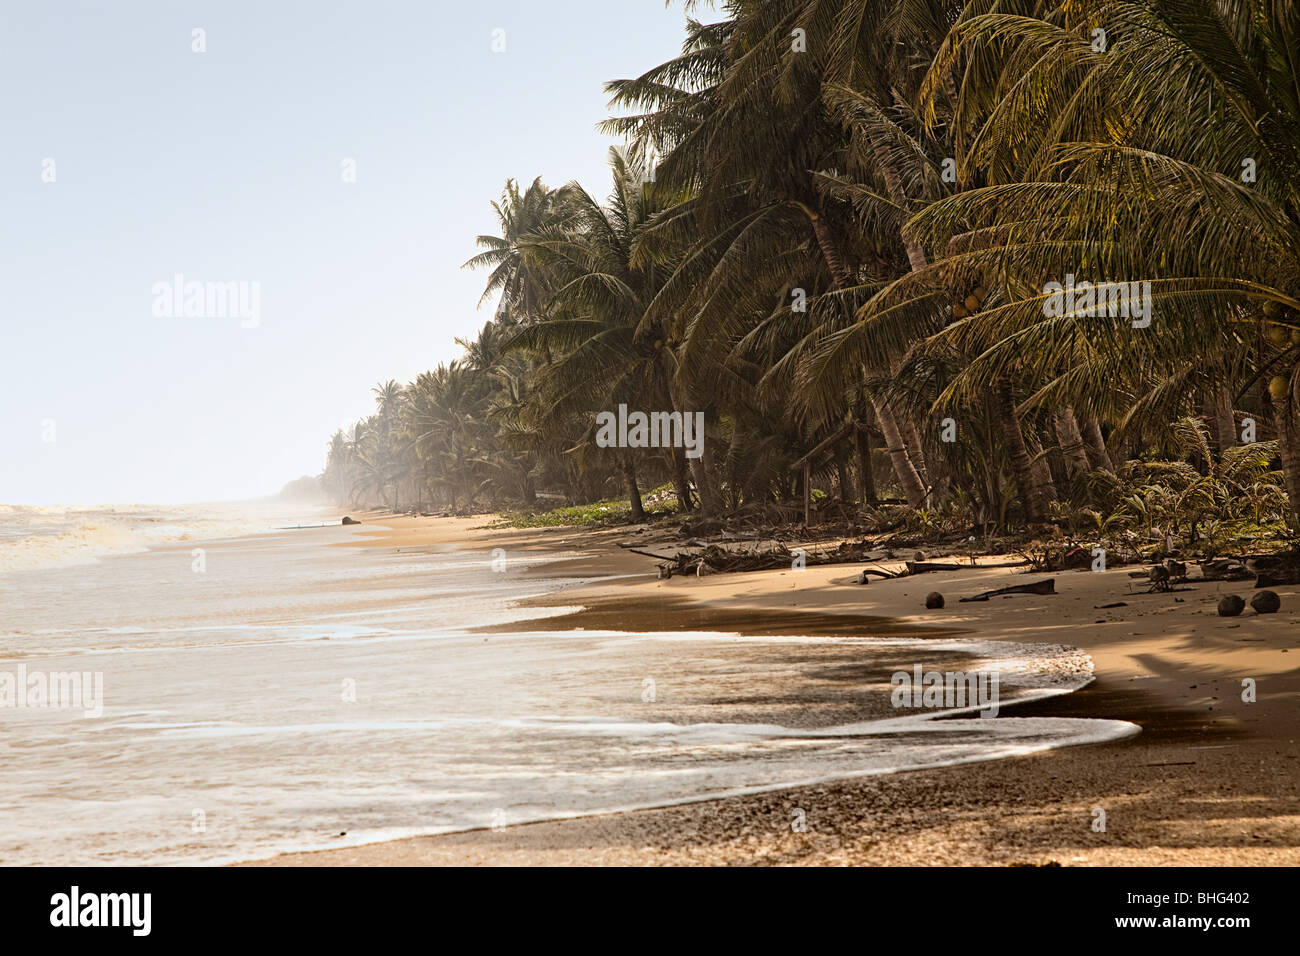 Beach at the gulf of thailand - Stock Image